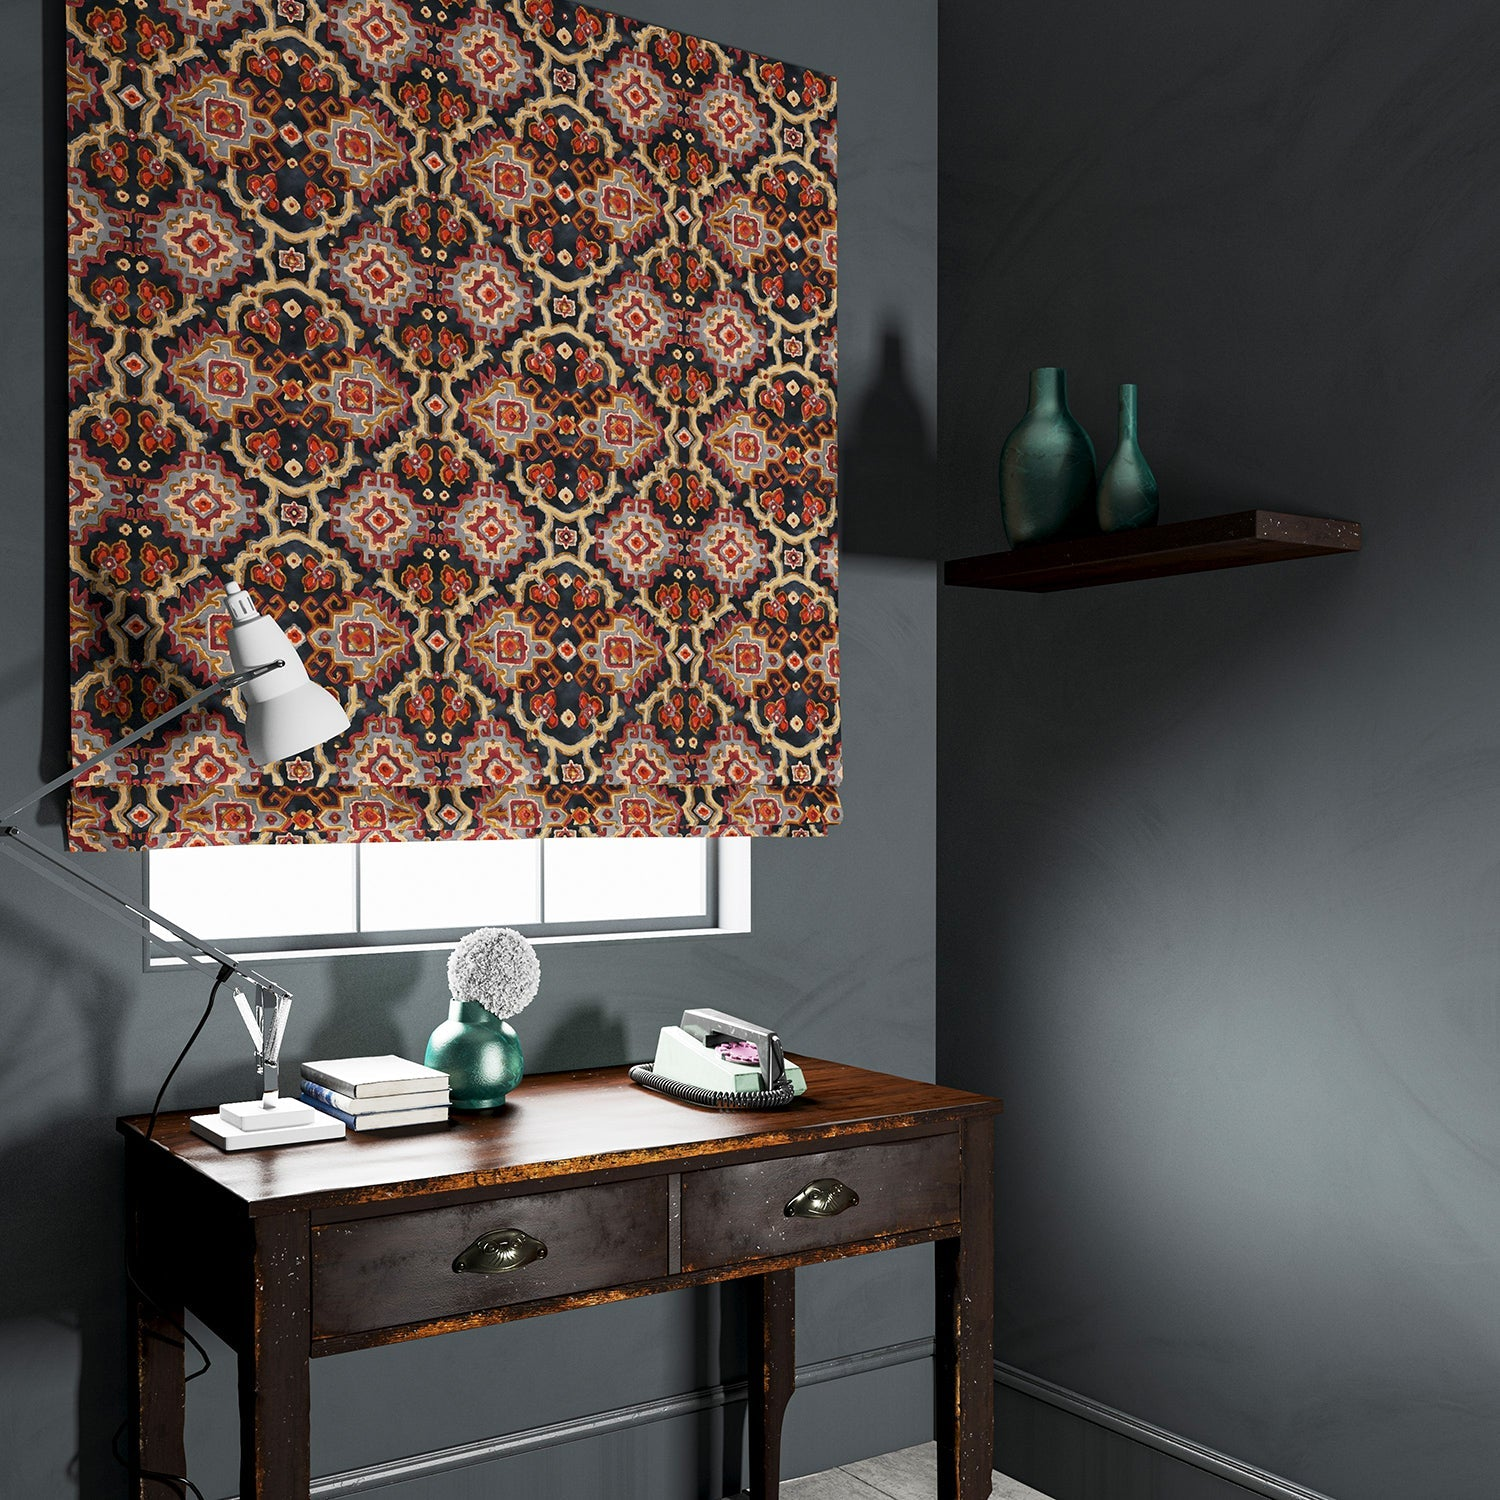 Velvet blind upholstered in a printed velvet fabric with an oriental geometric design in multicolours